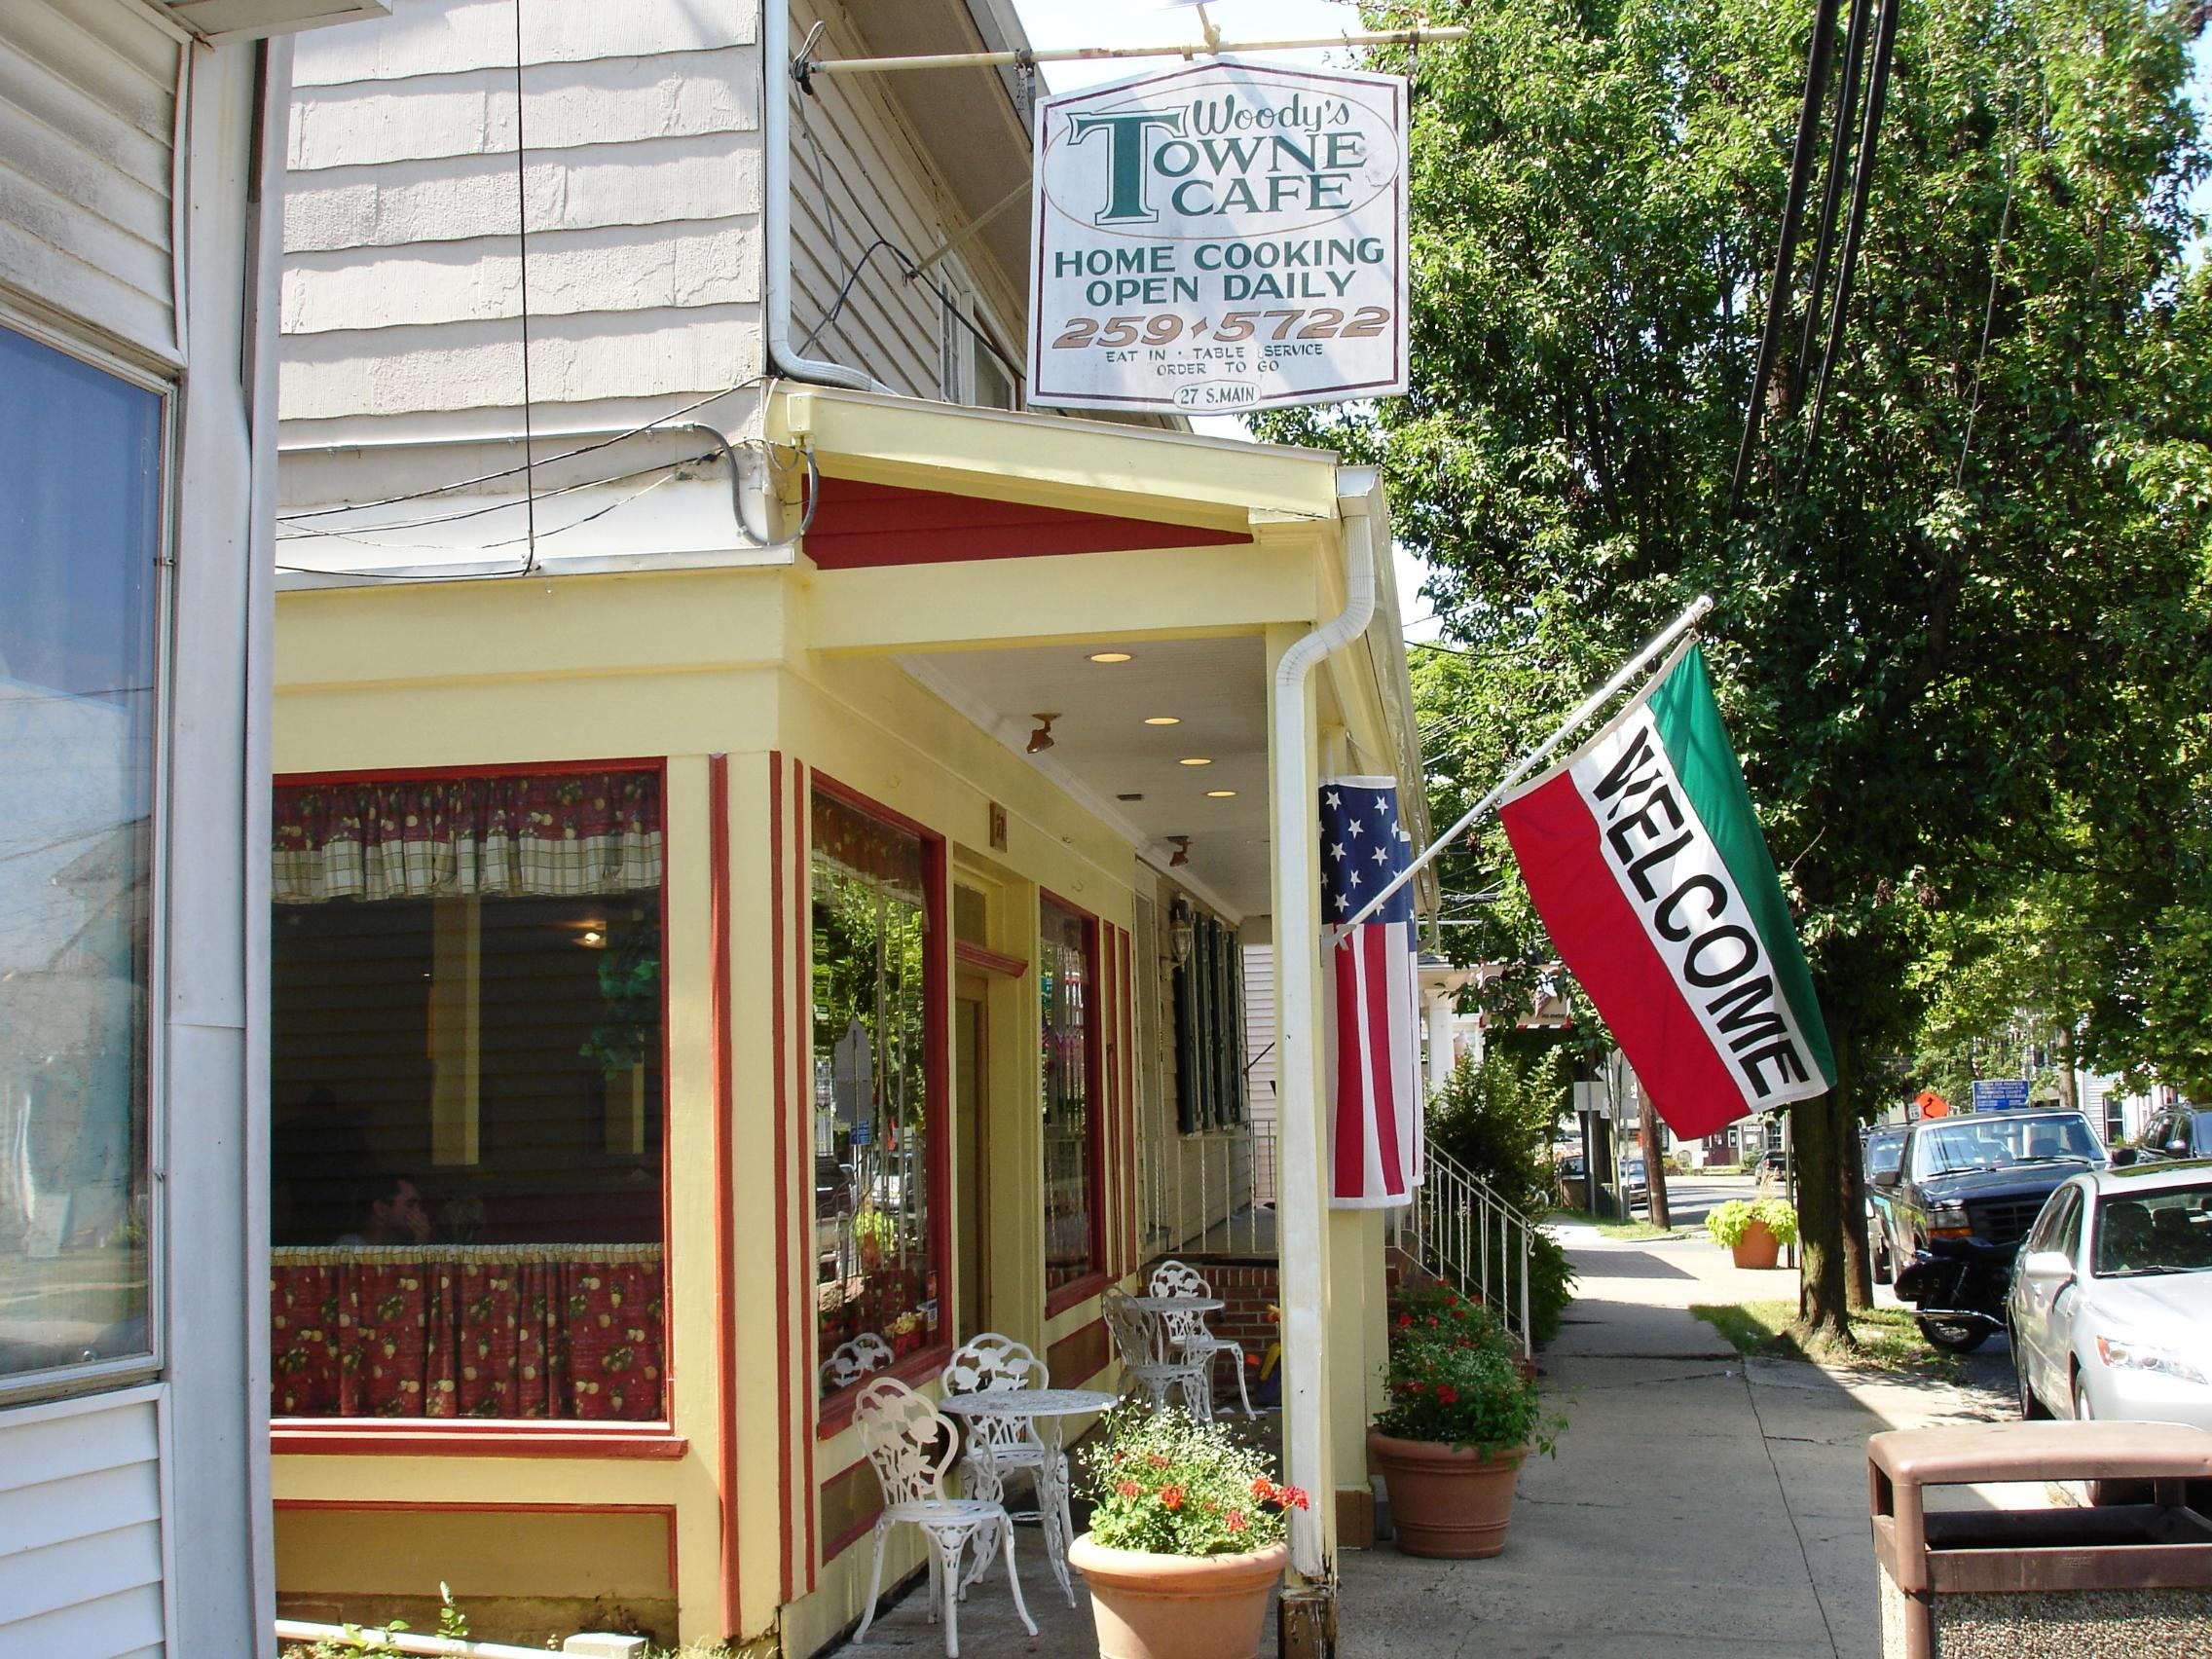 On the main street in picturesque Allentown, Woody's is a town cafe extraordinaire.